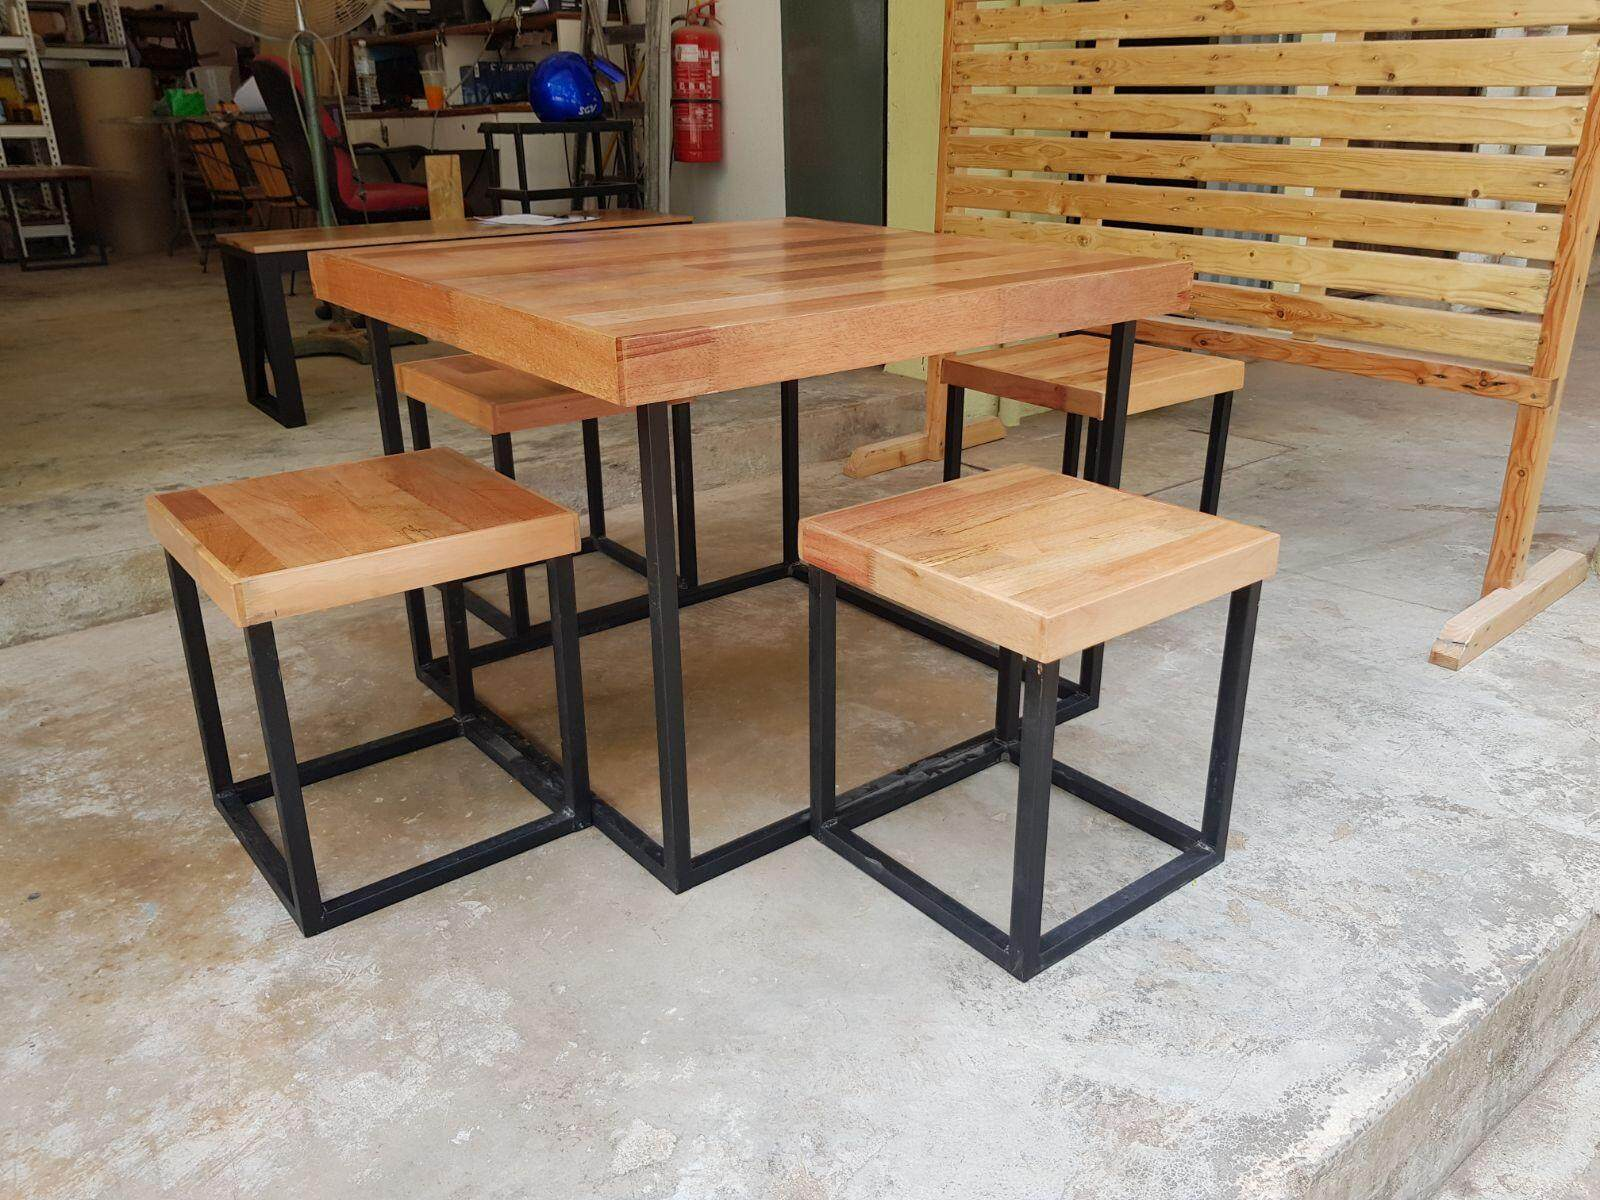 Ladubee Table with 4 stools